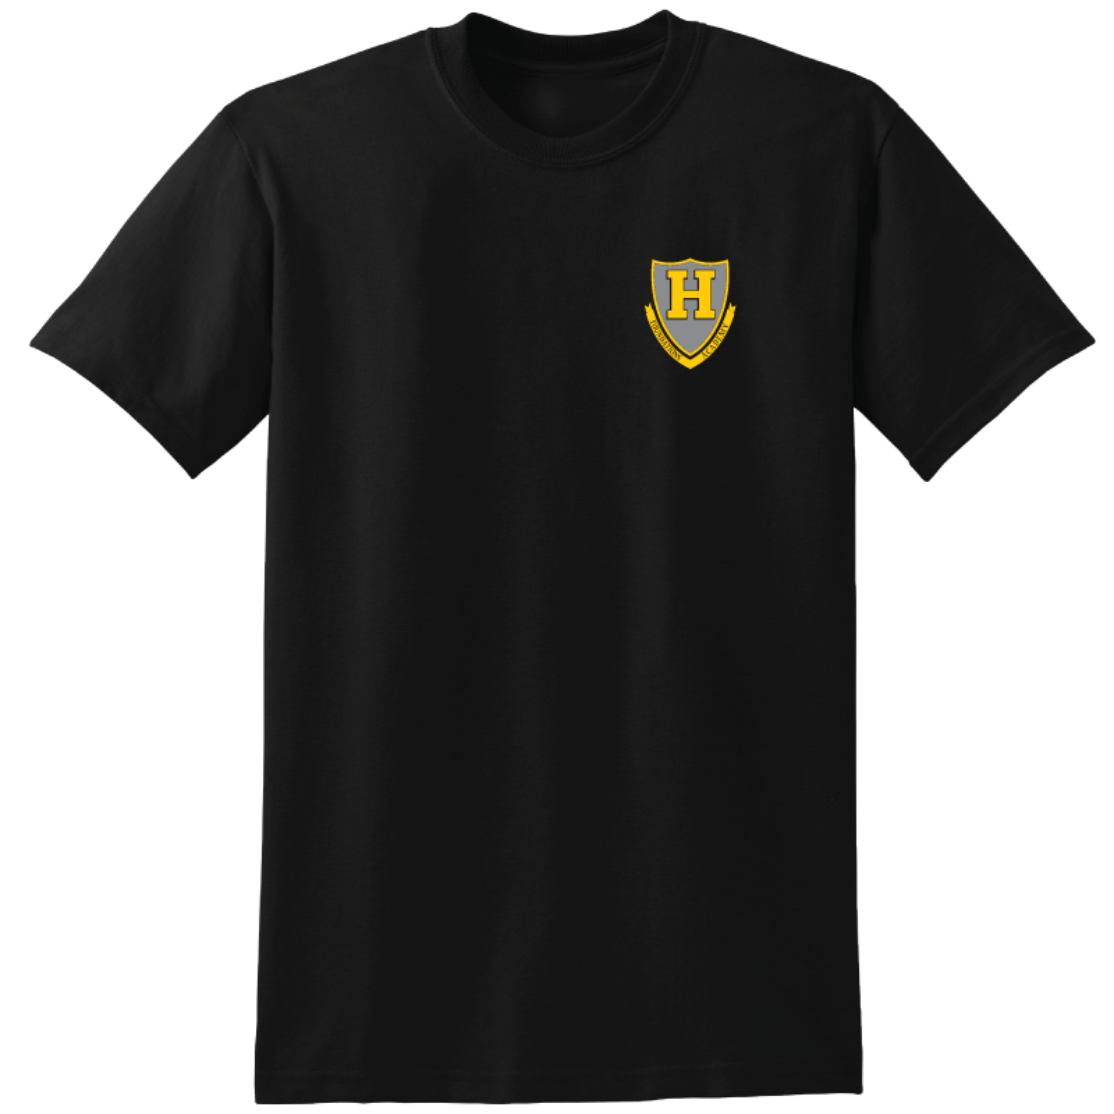 Foundations Academy (Hillcrest) 100% Polyester Moisture Wicking T-shirt - Black (unisex)